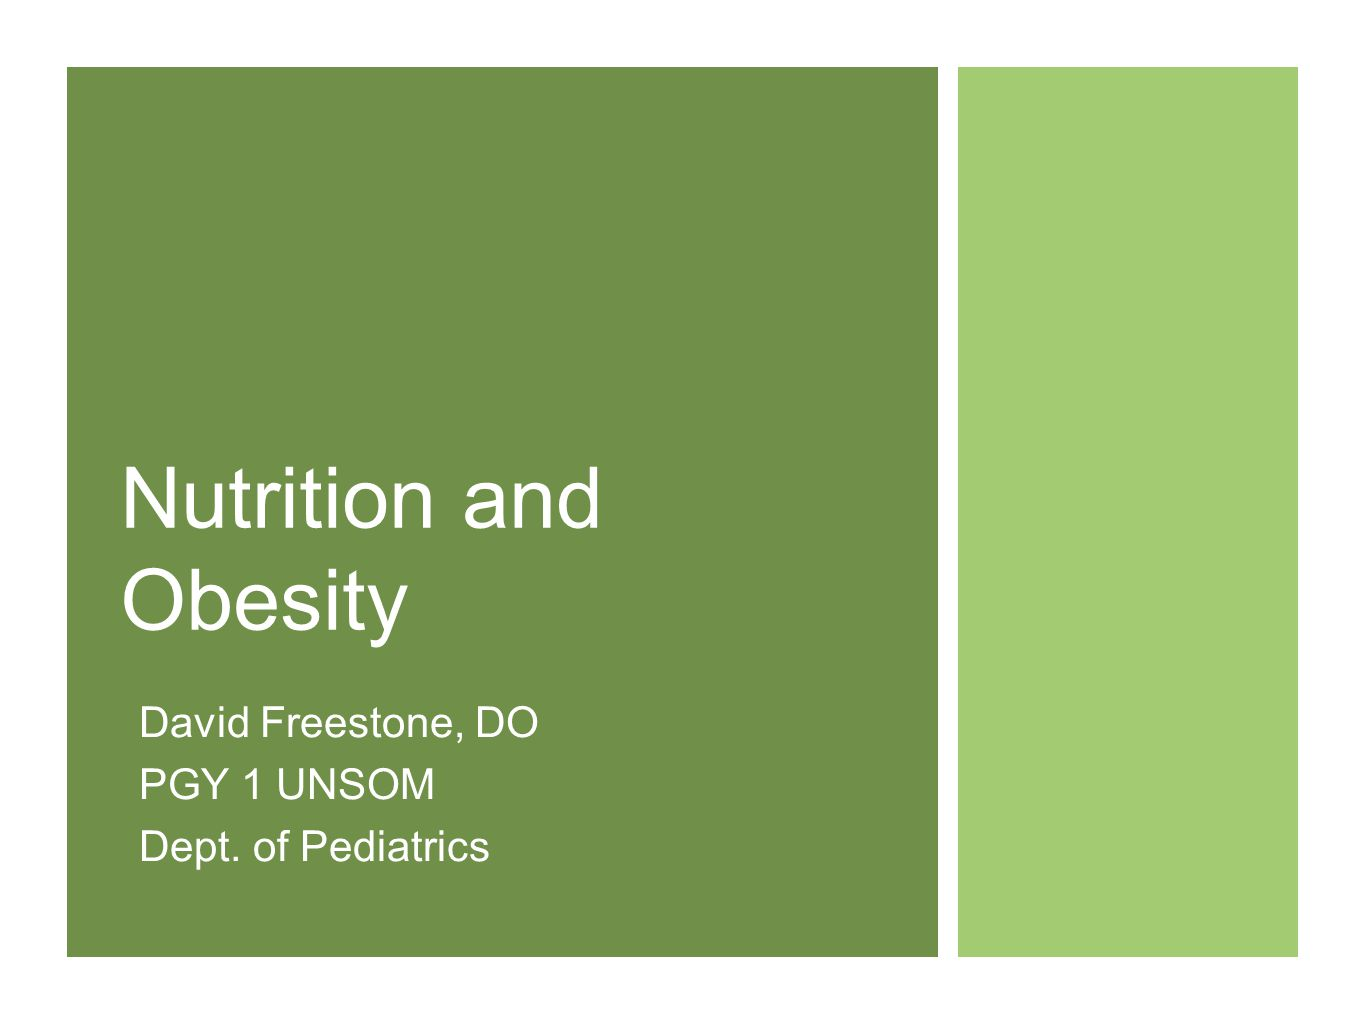 Nutrition and Obesity David Freestone, DO PGY 1 UNSOM Dept. of Pediatrics